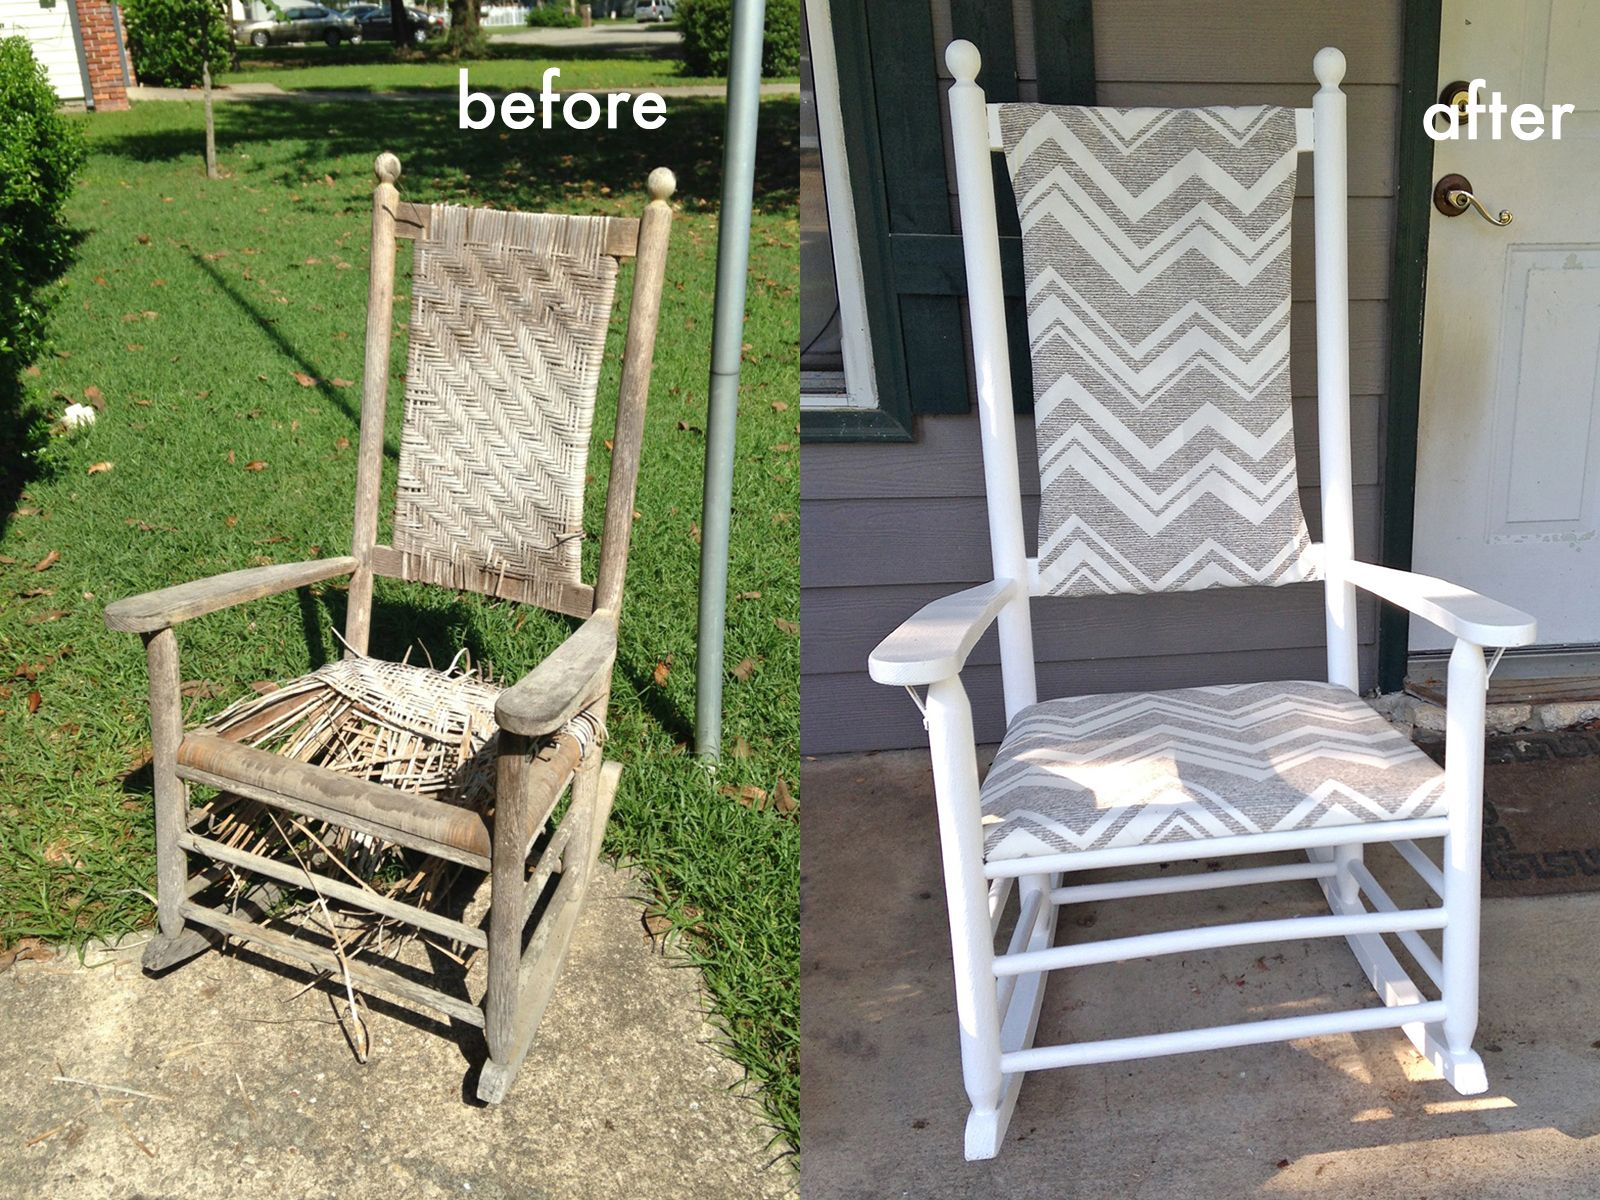 We Can Make Anything Rocking Chair Redo Rocking Chair Redo Rocking Chair Makeover Chair Redo